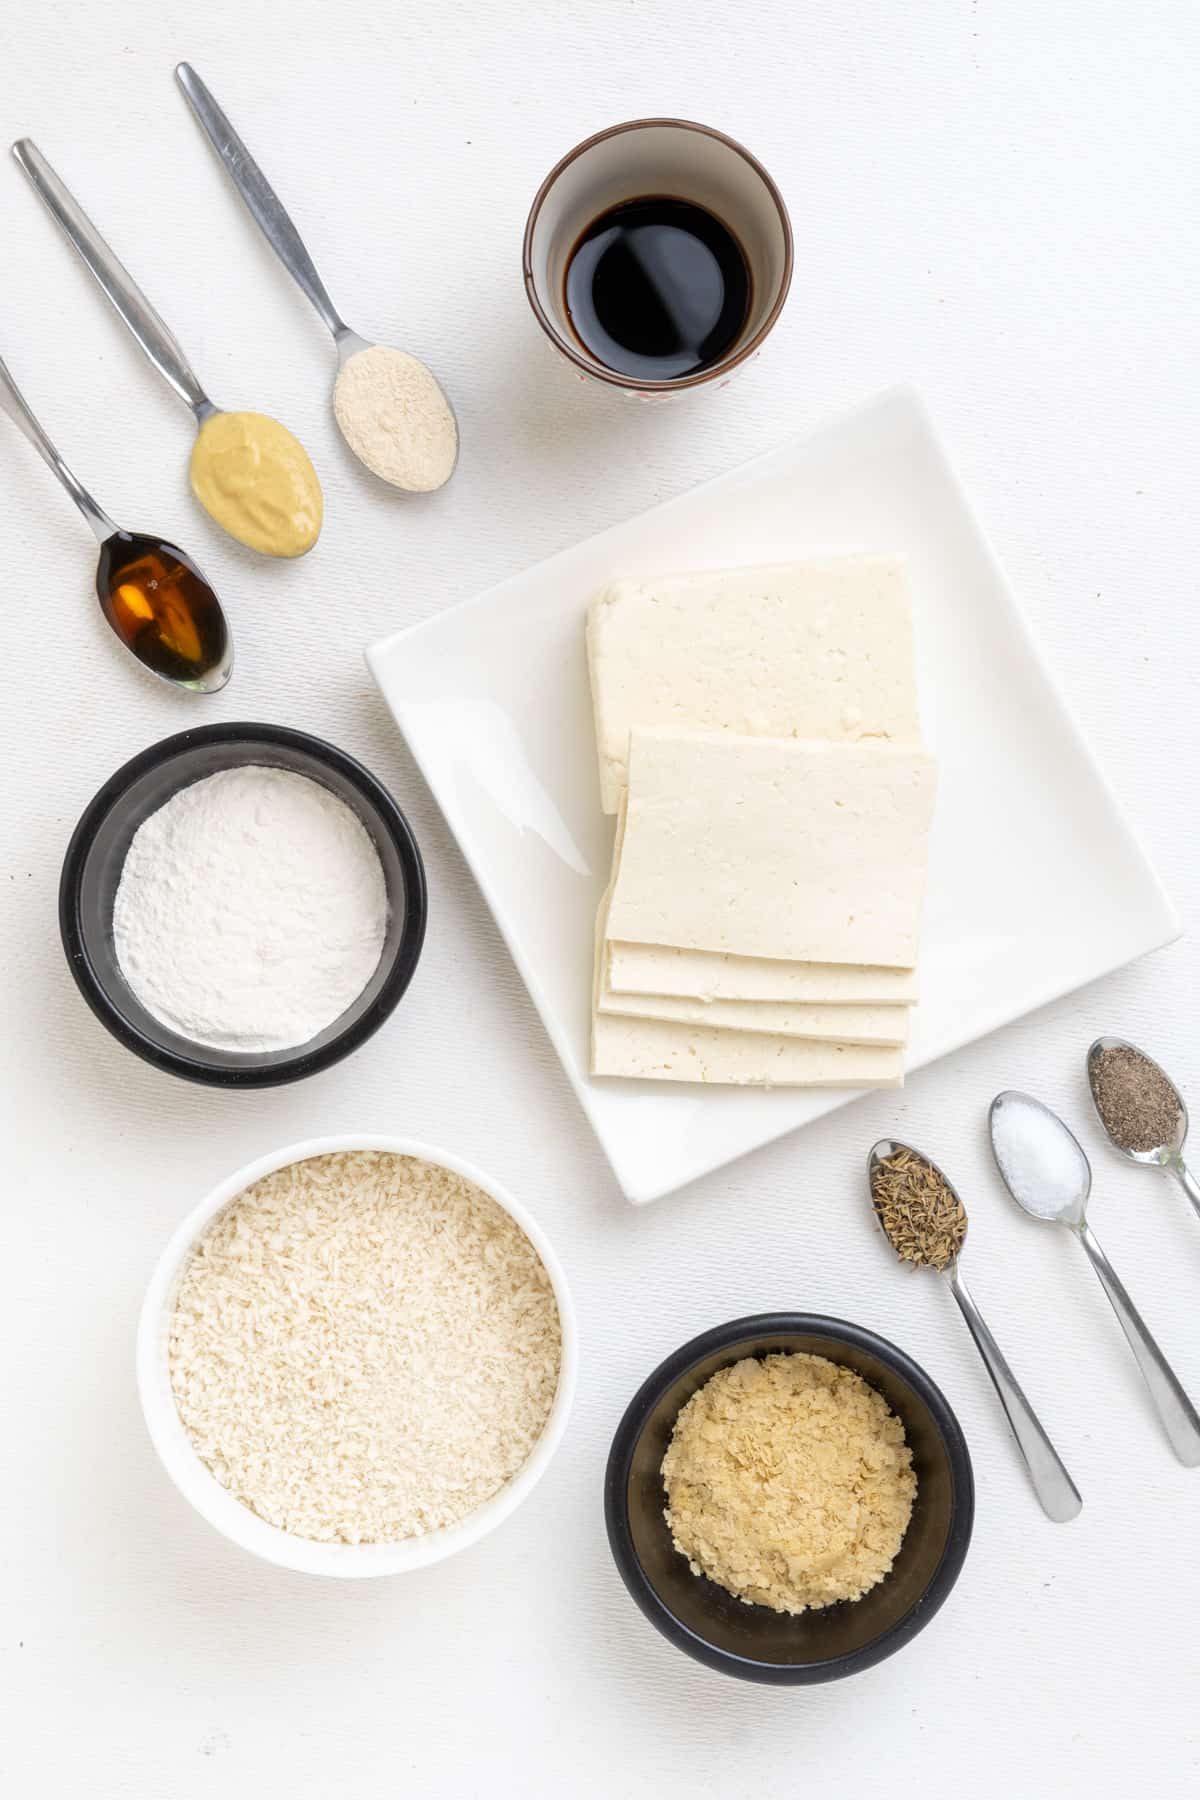 The ingredients for the breaded tofu recipe: Slices of firm tofu, plain flour, Japanese panko breadcrumbs, nutritional yeast flakes, soy sauce and on several spoons: maple syrup, dijon mustard, garlic powder, salt, pepper and dried thyme.